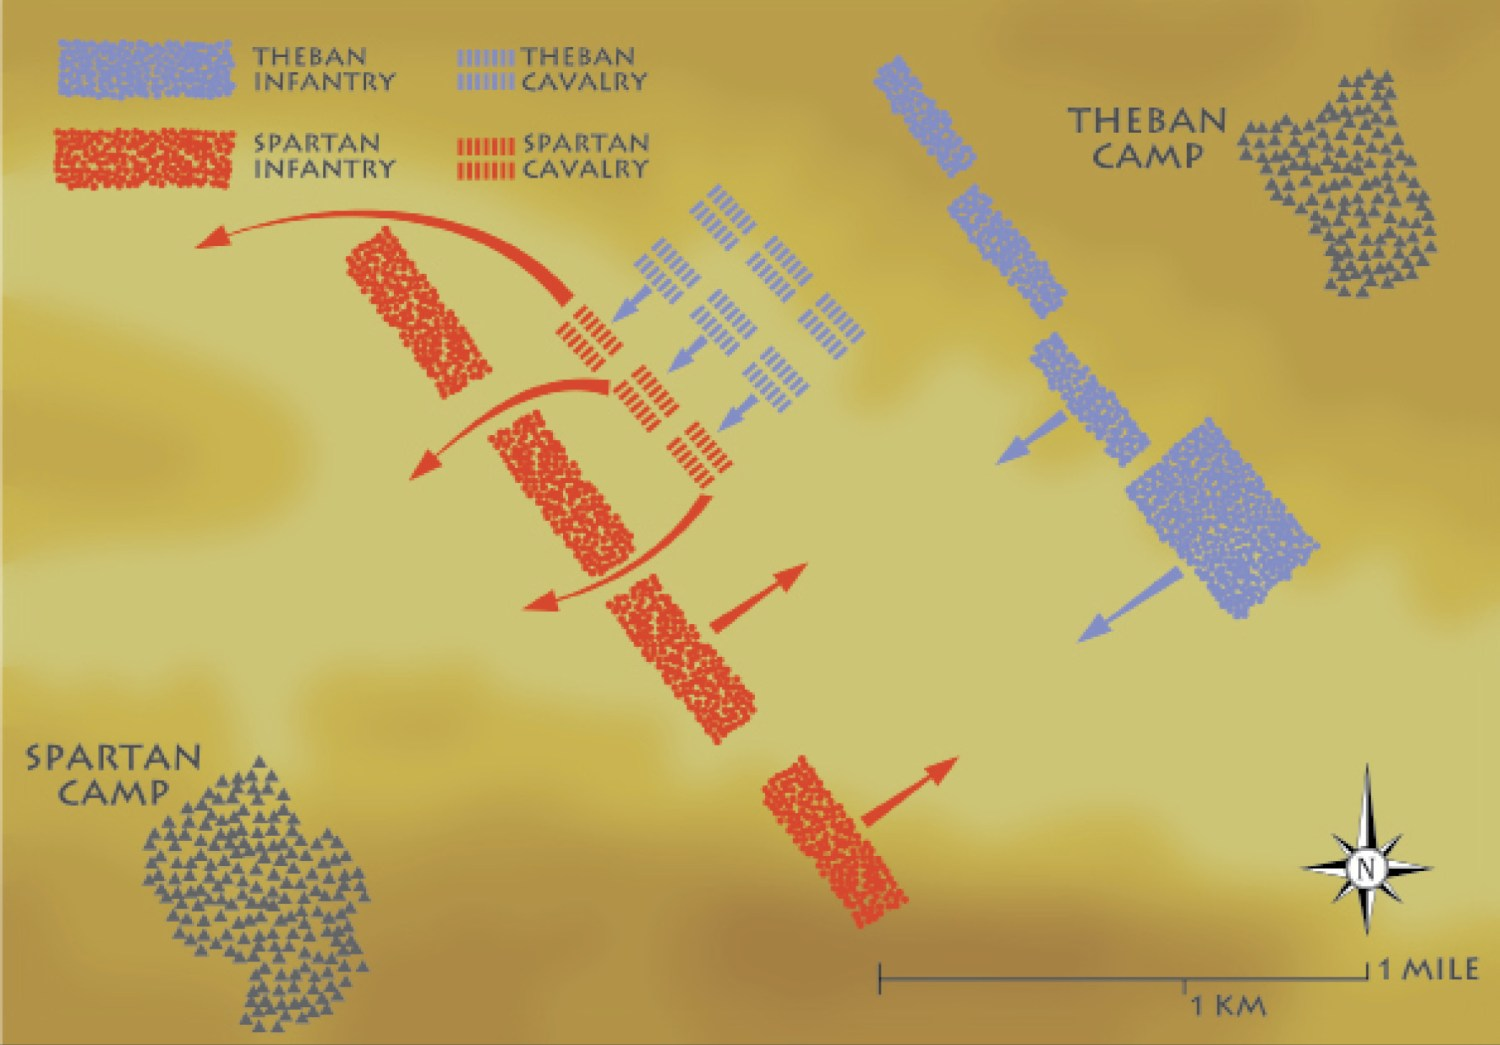 Above The Battle of Leuktra, 371 BC: Phase One. The revolutionary Theban deployment involved concentration of force on the left in the form of a heavy phalanx combined with a left-to-right echelon to 'refuse' the weaker sections of the line.